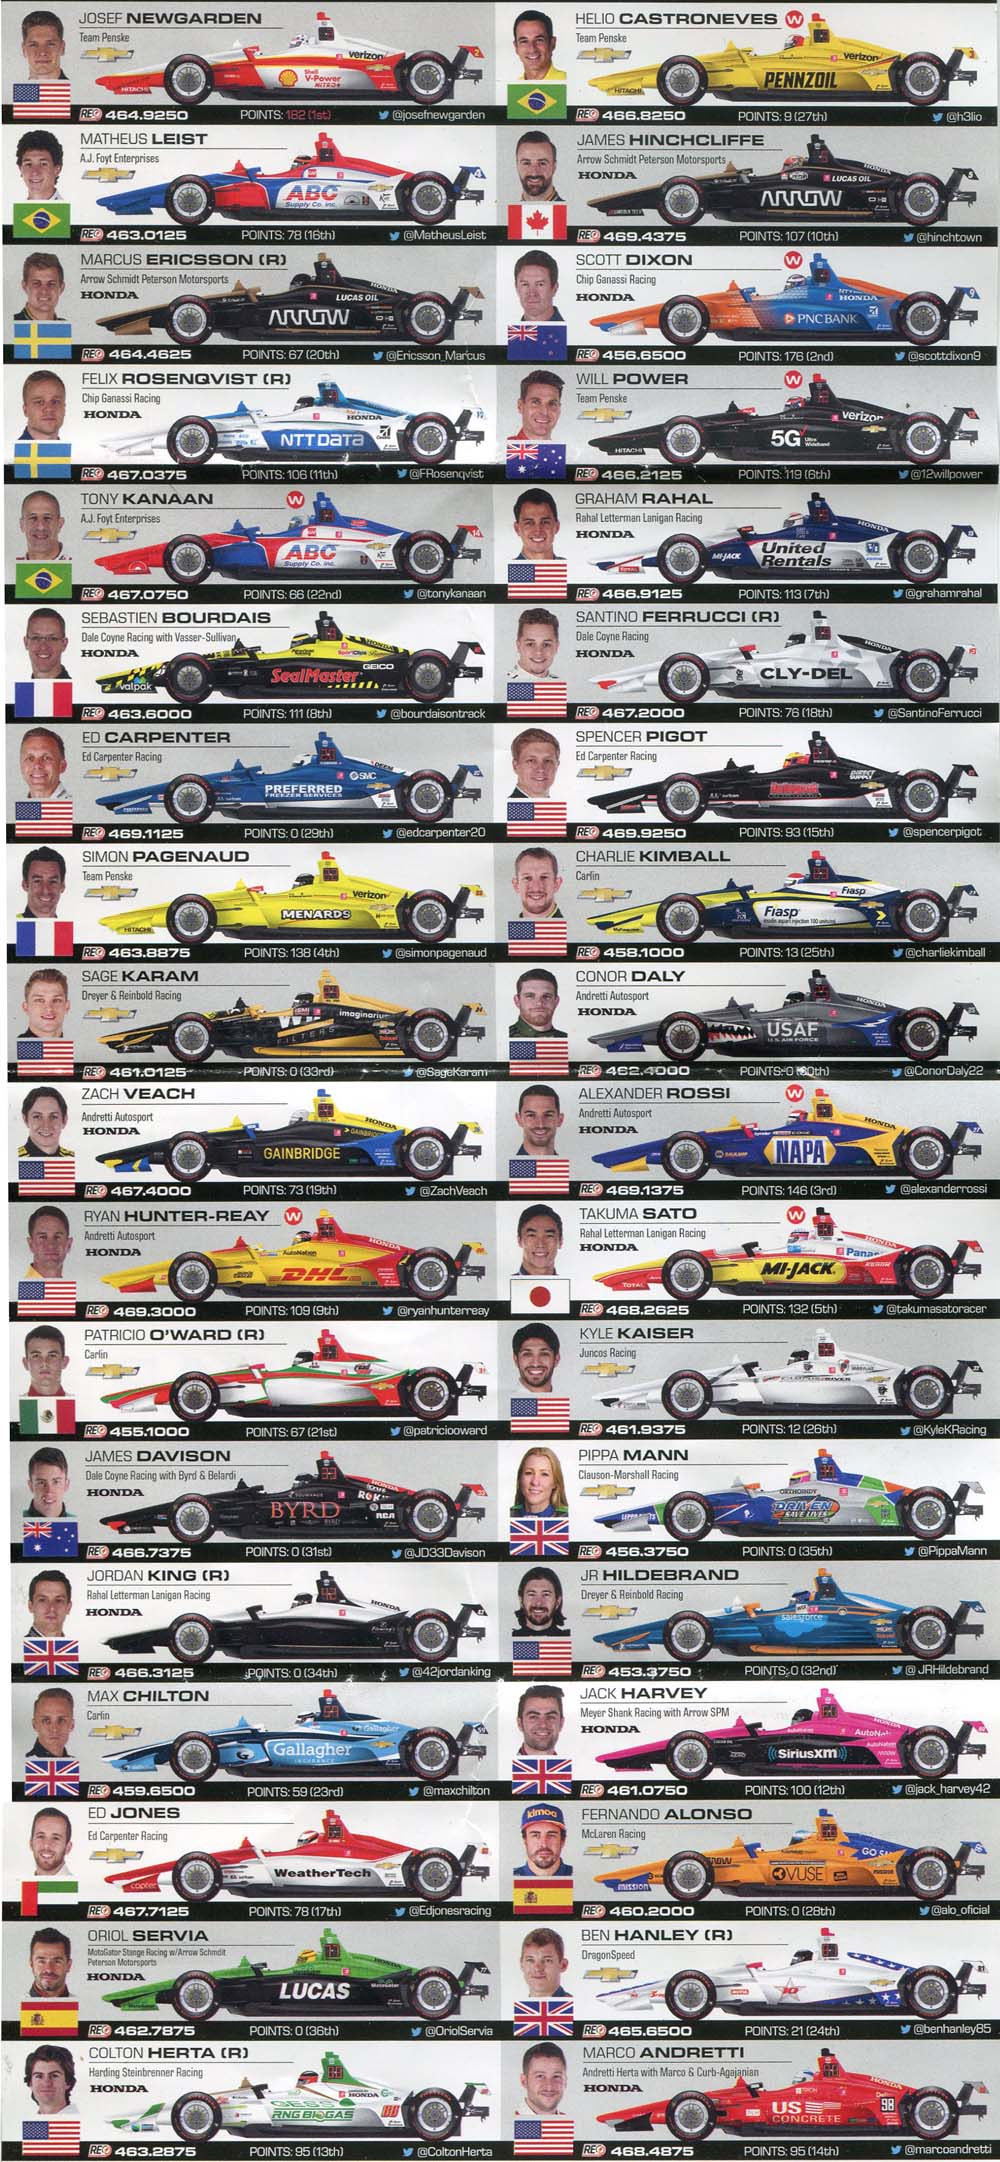 photograph relating to Printable Indy 500 Starting Grid named RACING Information - Could possibly 2019 Racing - IndyCar, Components 1, Indy